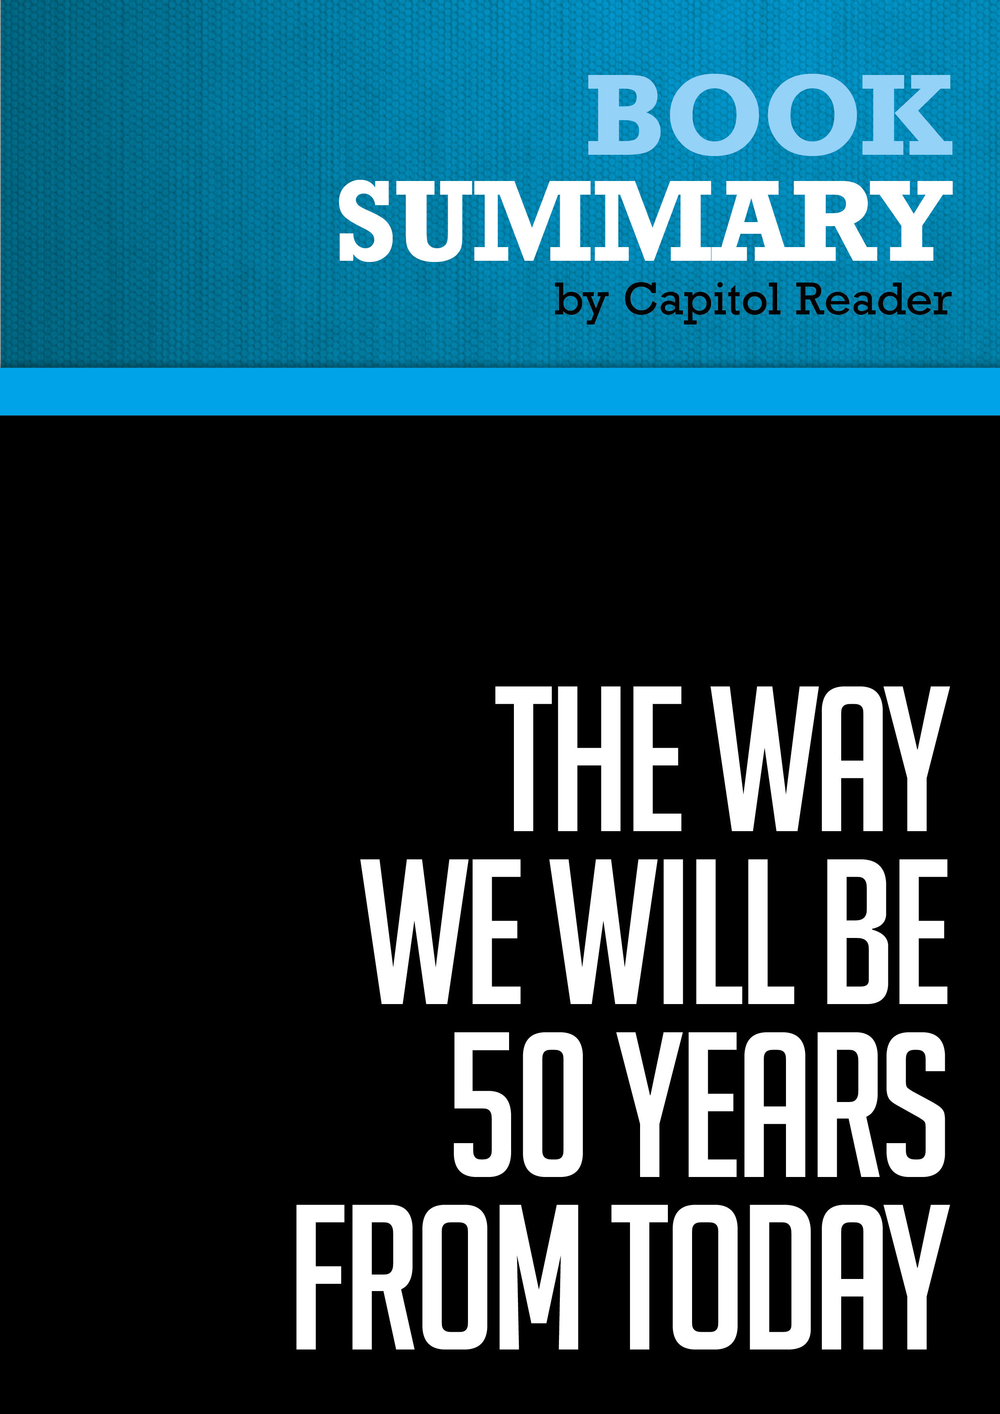 Summary of The Way We Will Be 50 Years From Today: 60 of the World's Greatest Minds Share Their Visions of the Next Half Century -